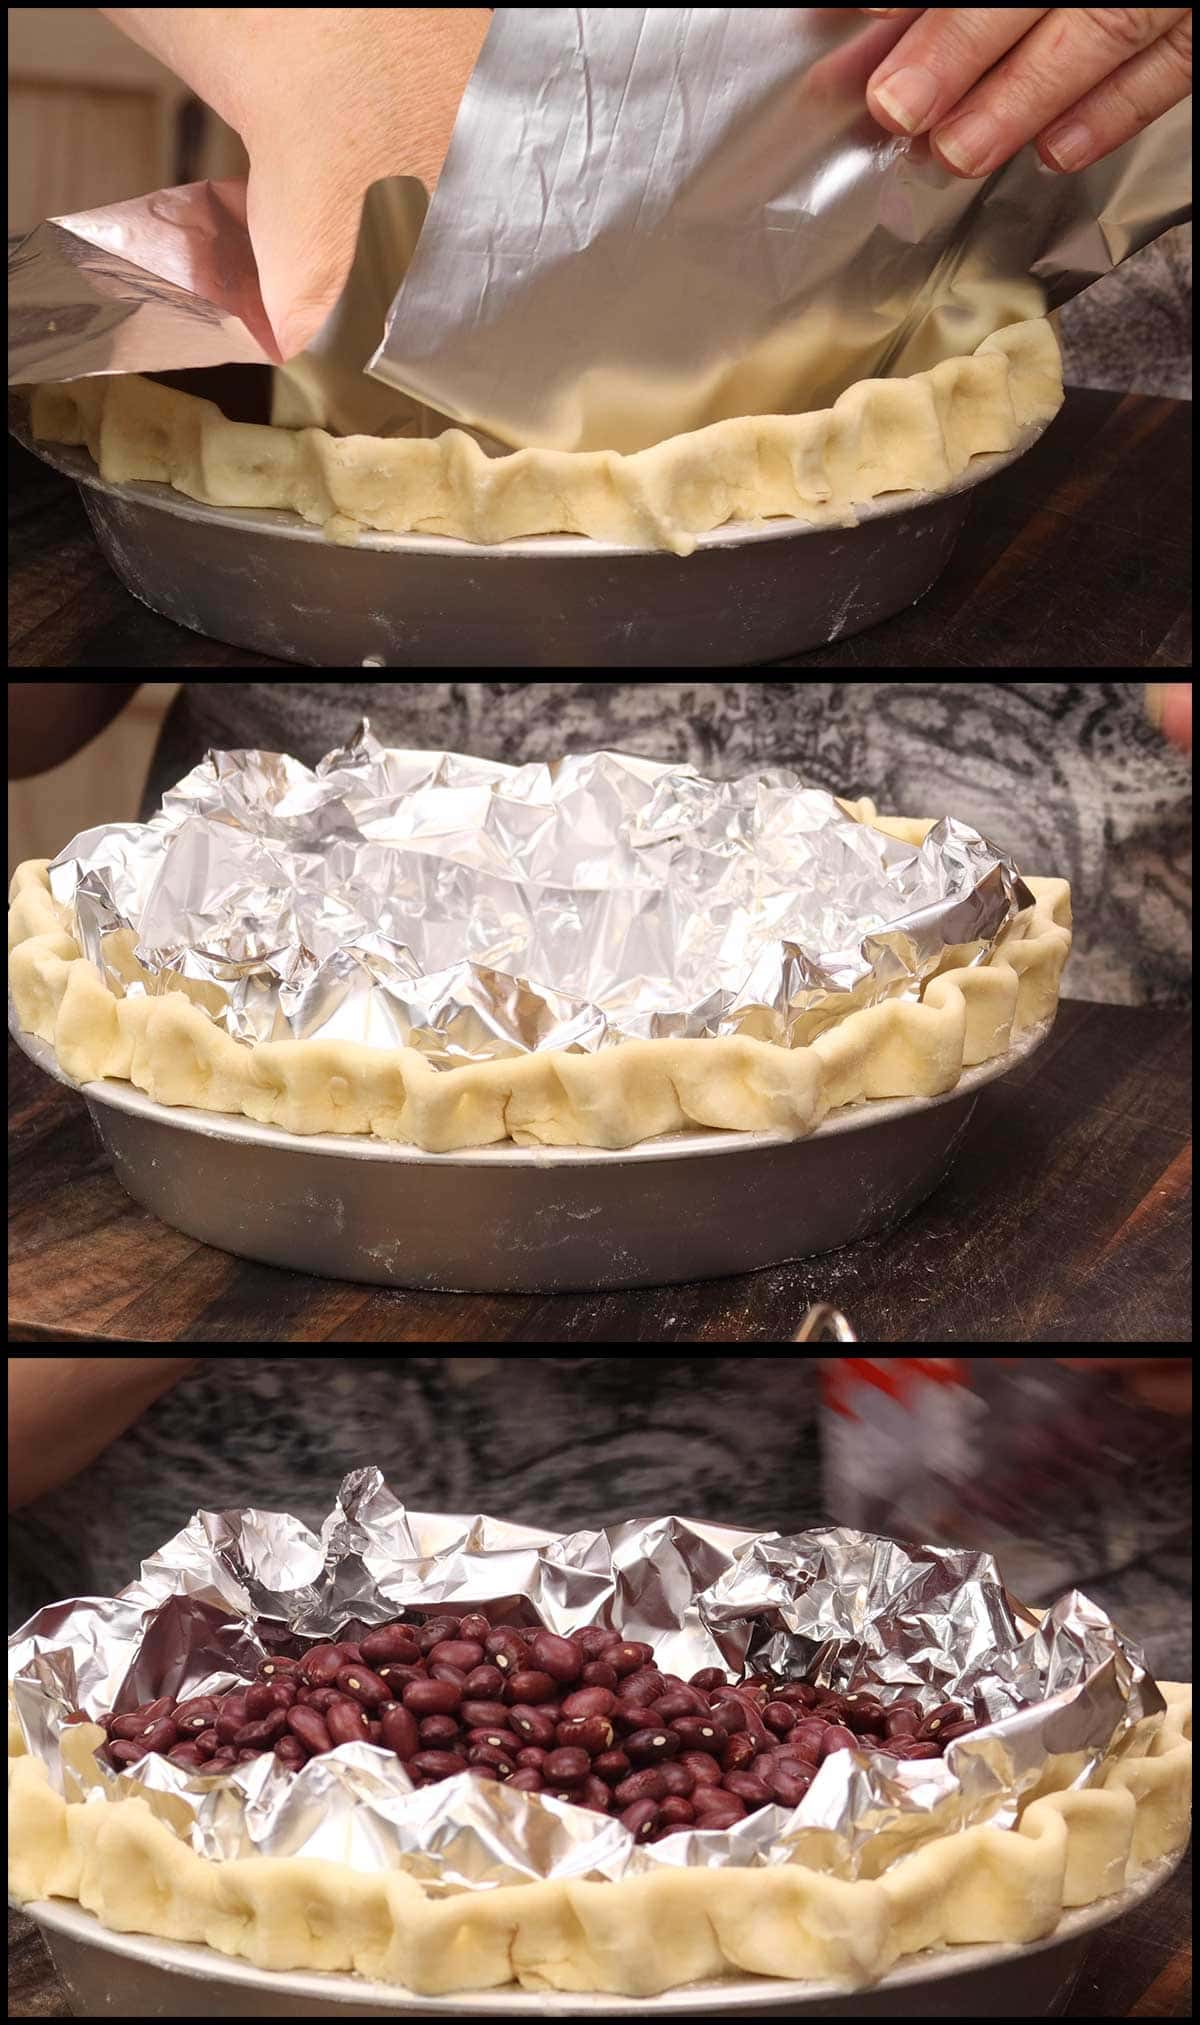 Lining the pie shell with foil and filling with dry beans